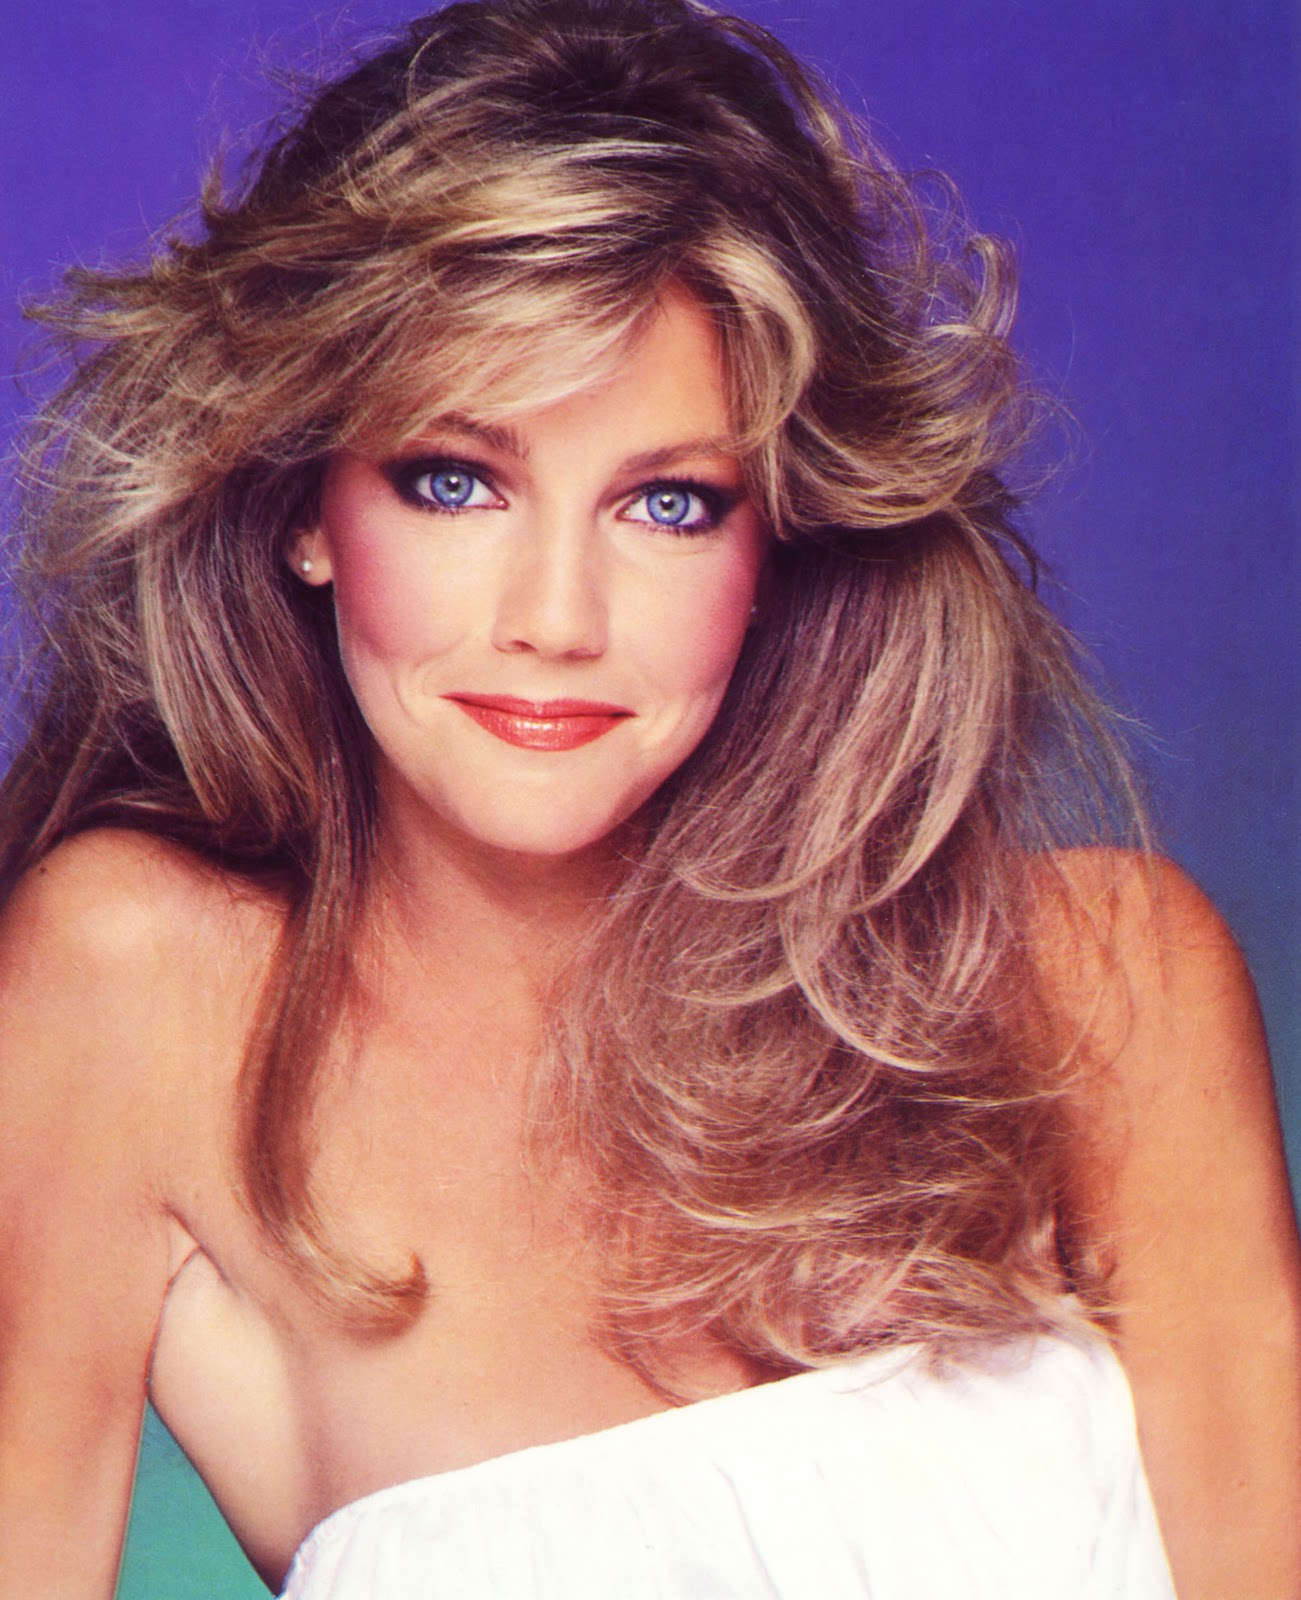 Heather Locklear As Young Girl